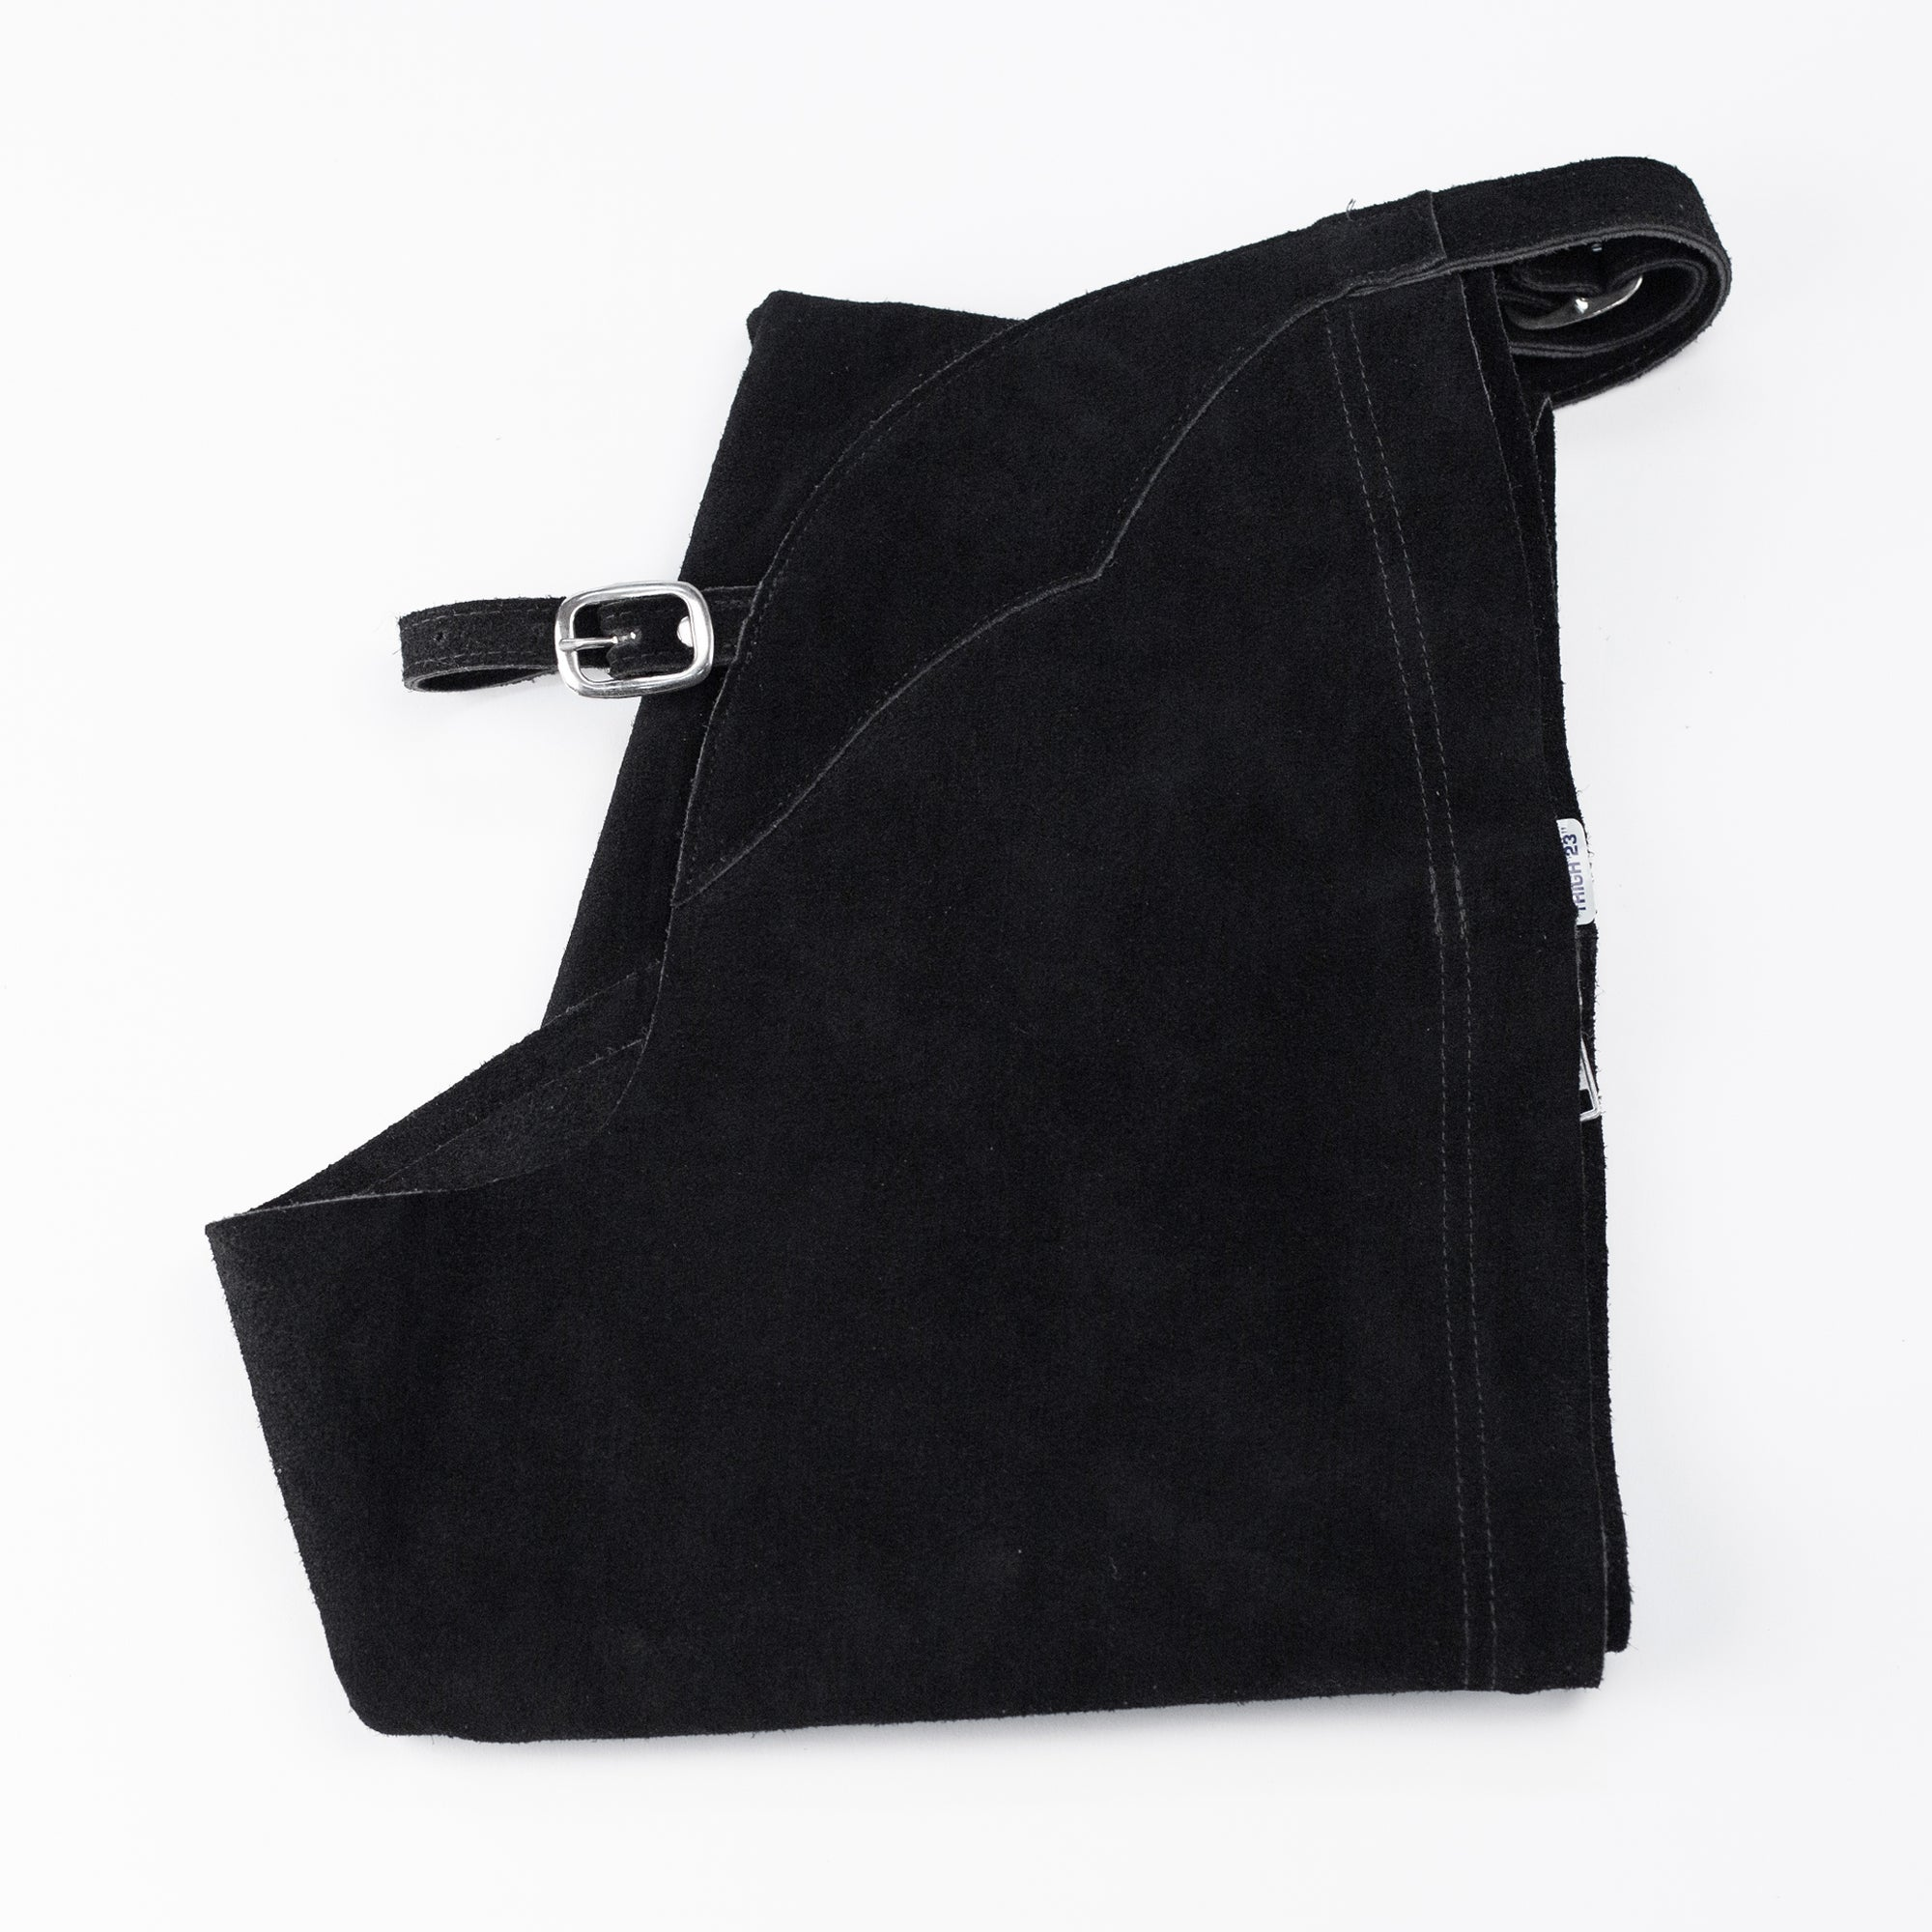 English Schooling Chaps - Black Suede